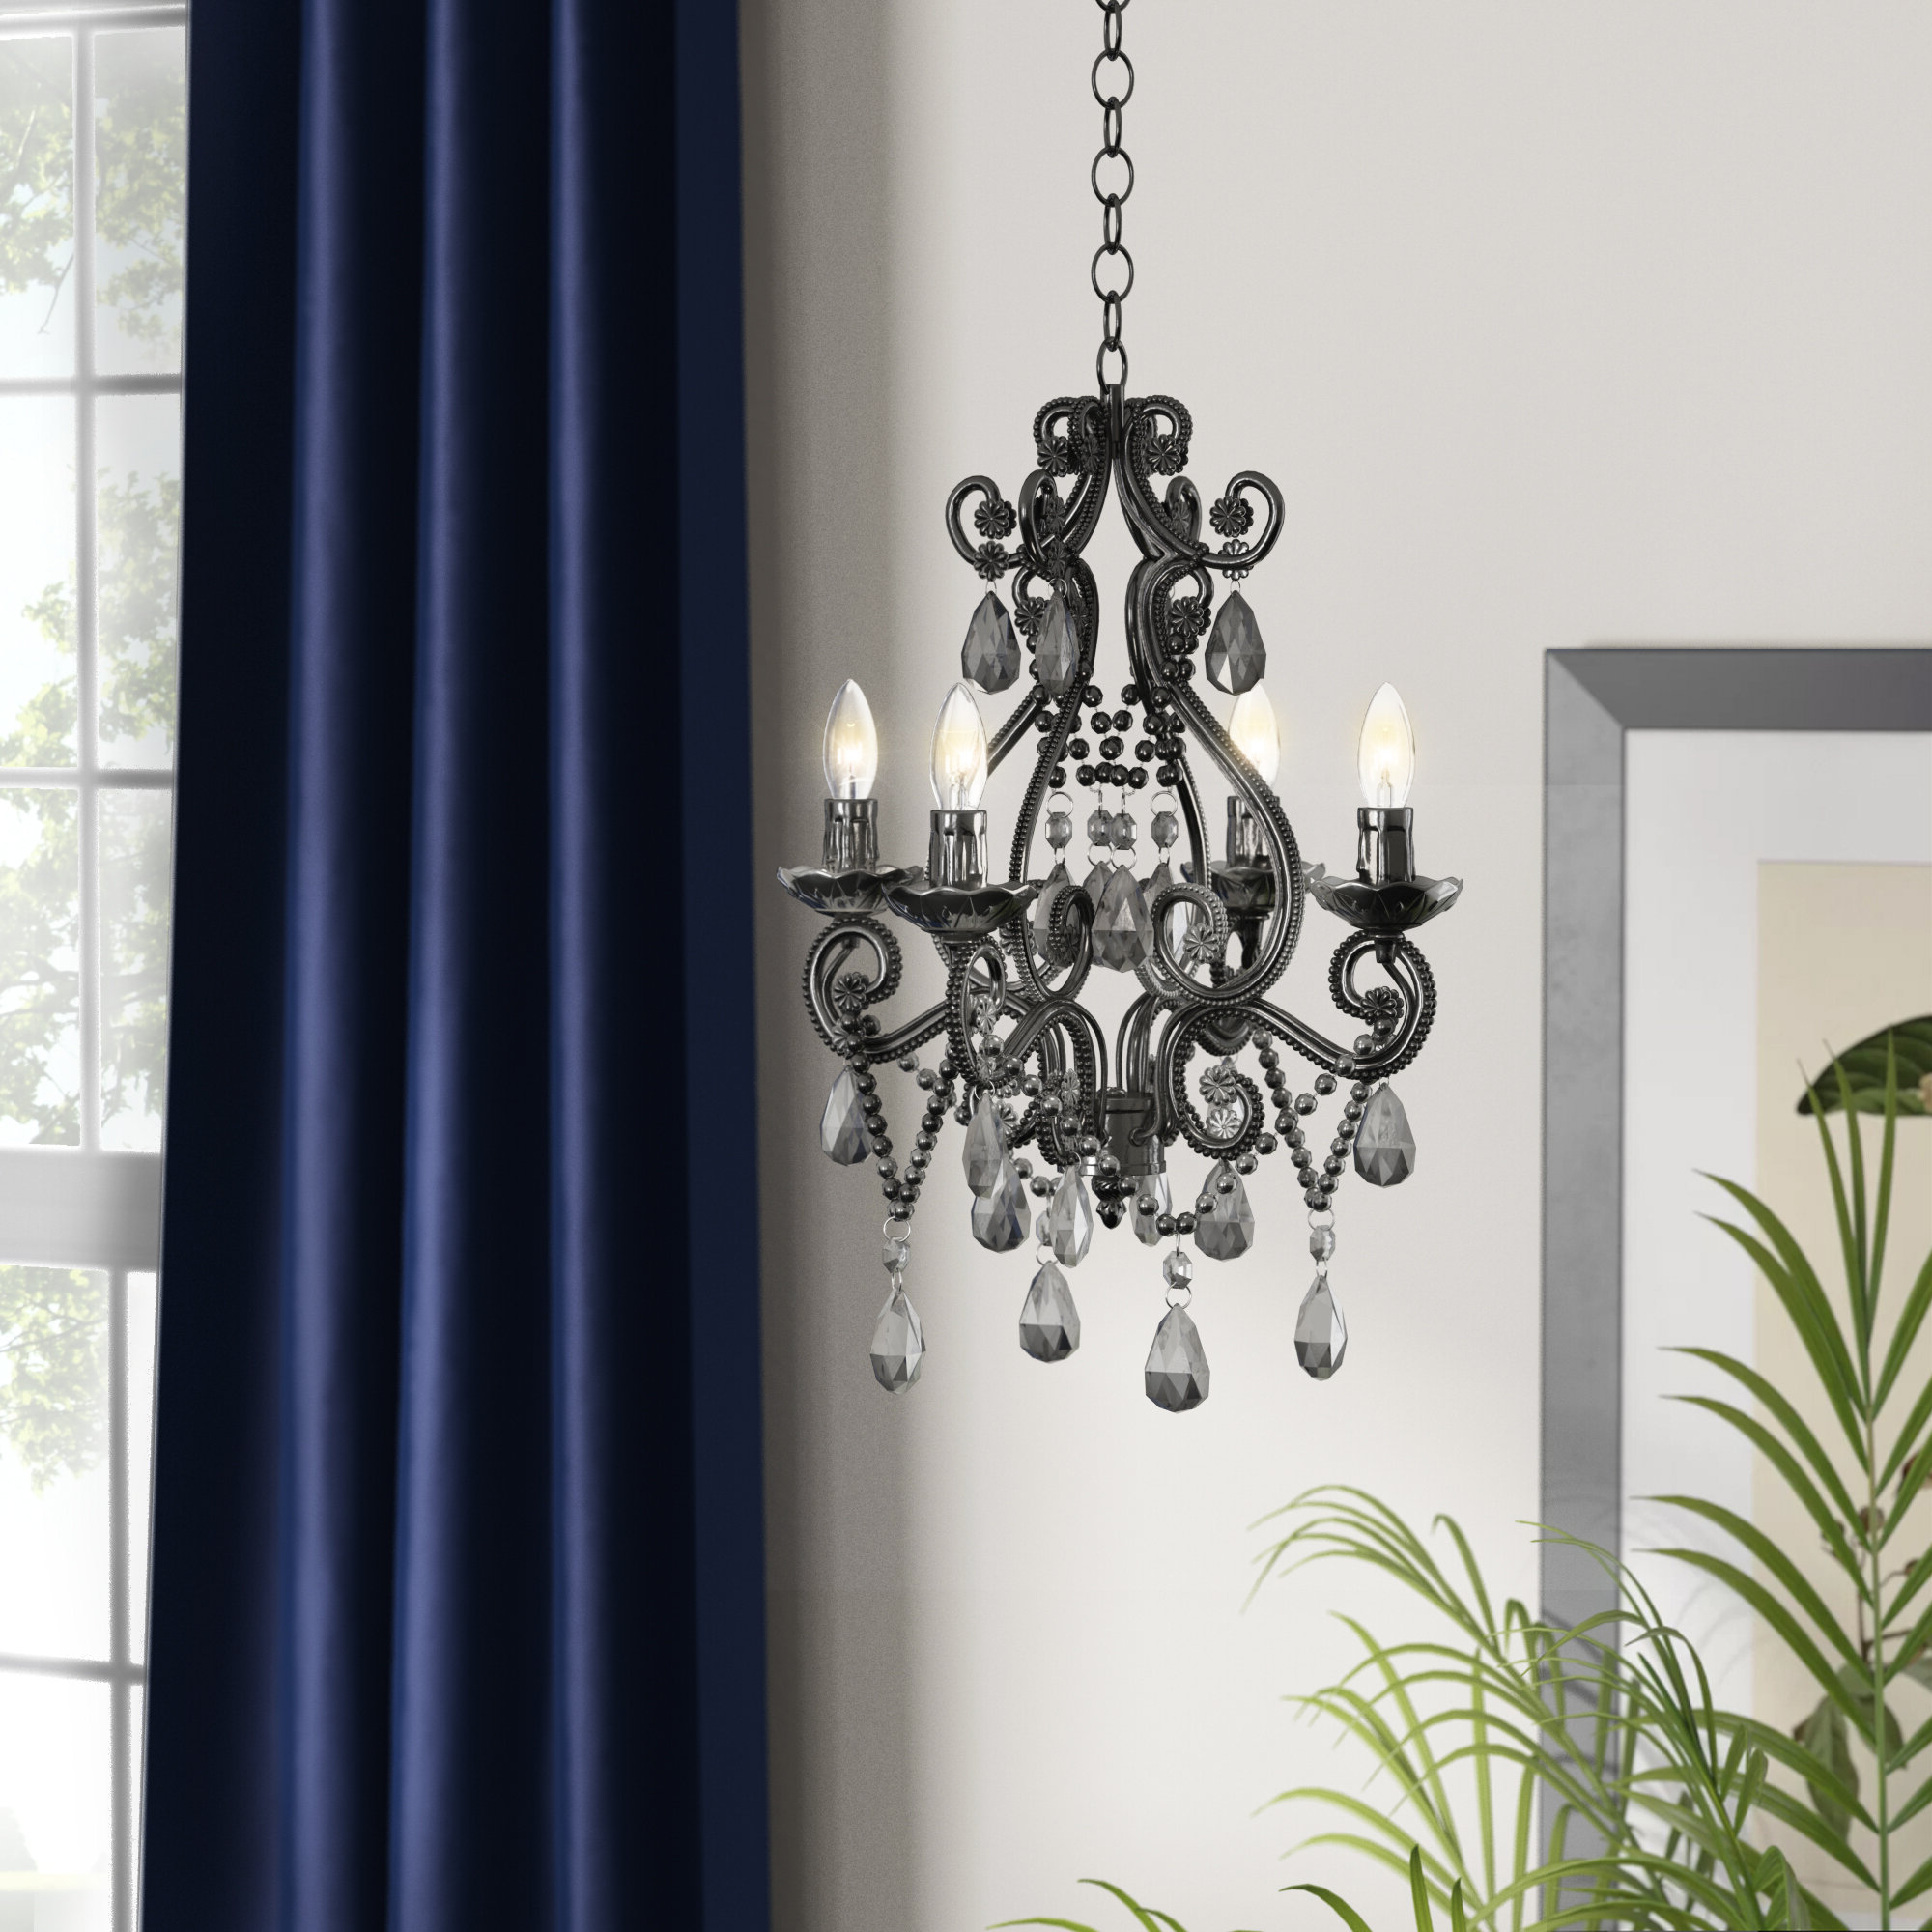 Aldora 4 Light Candle Style Chandelier Pertaining To Latest Aldora 4 Light Candle Style Chandeliers (View 5 of 20)